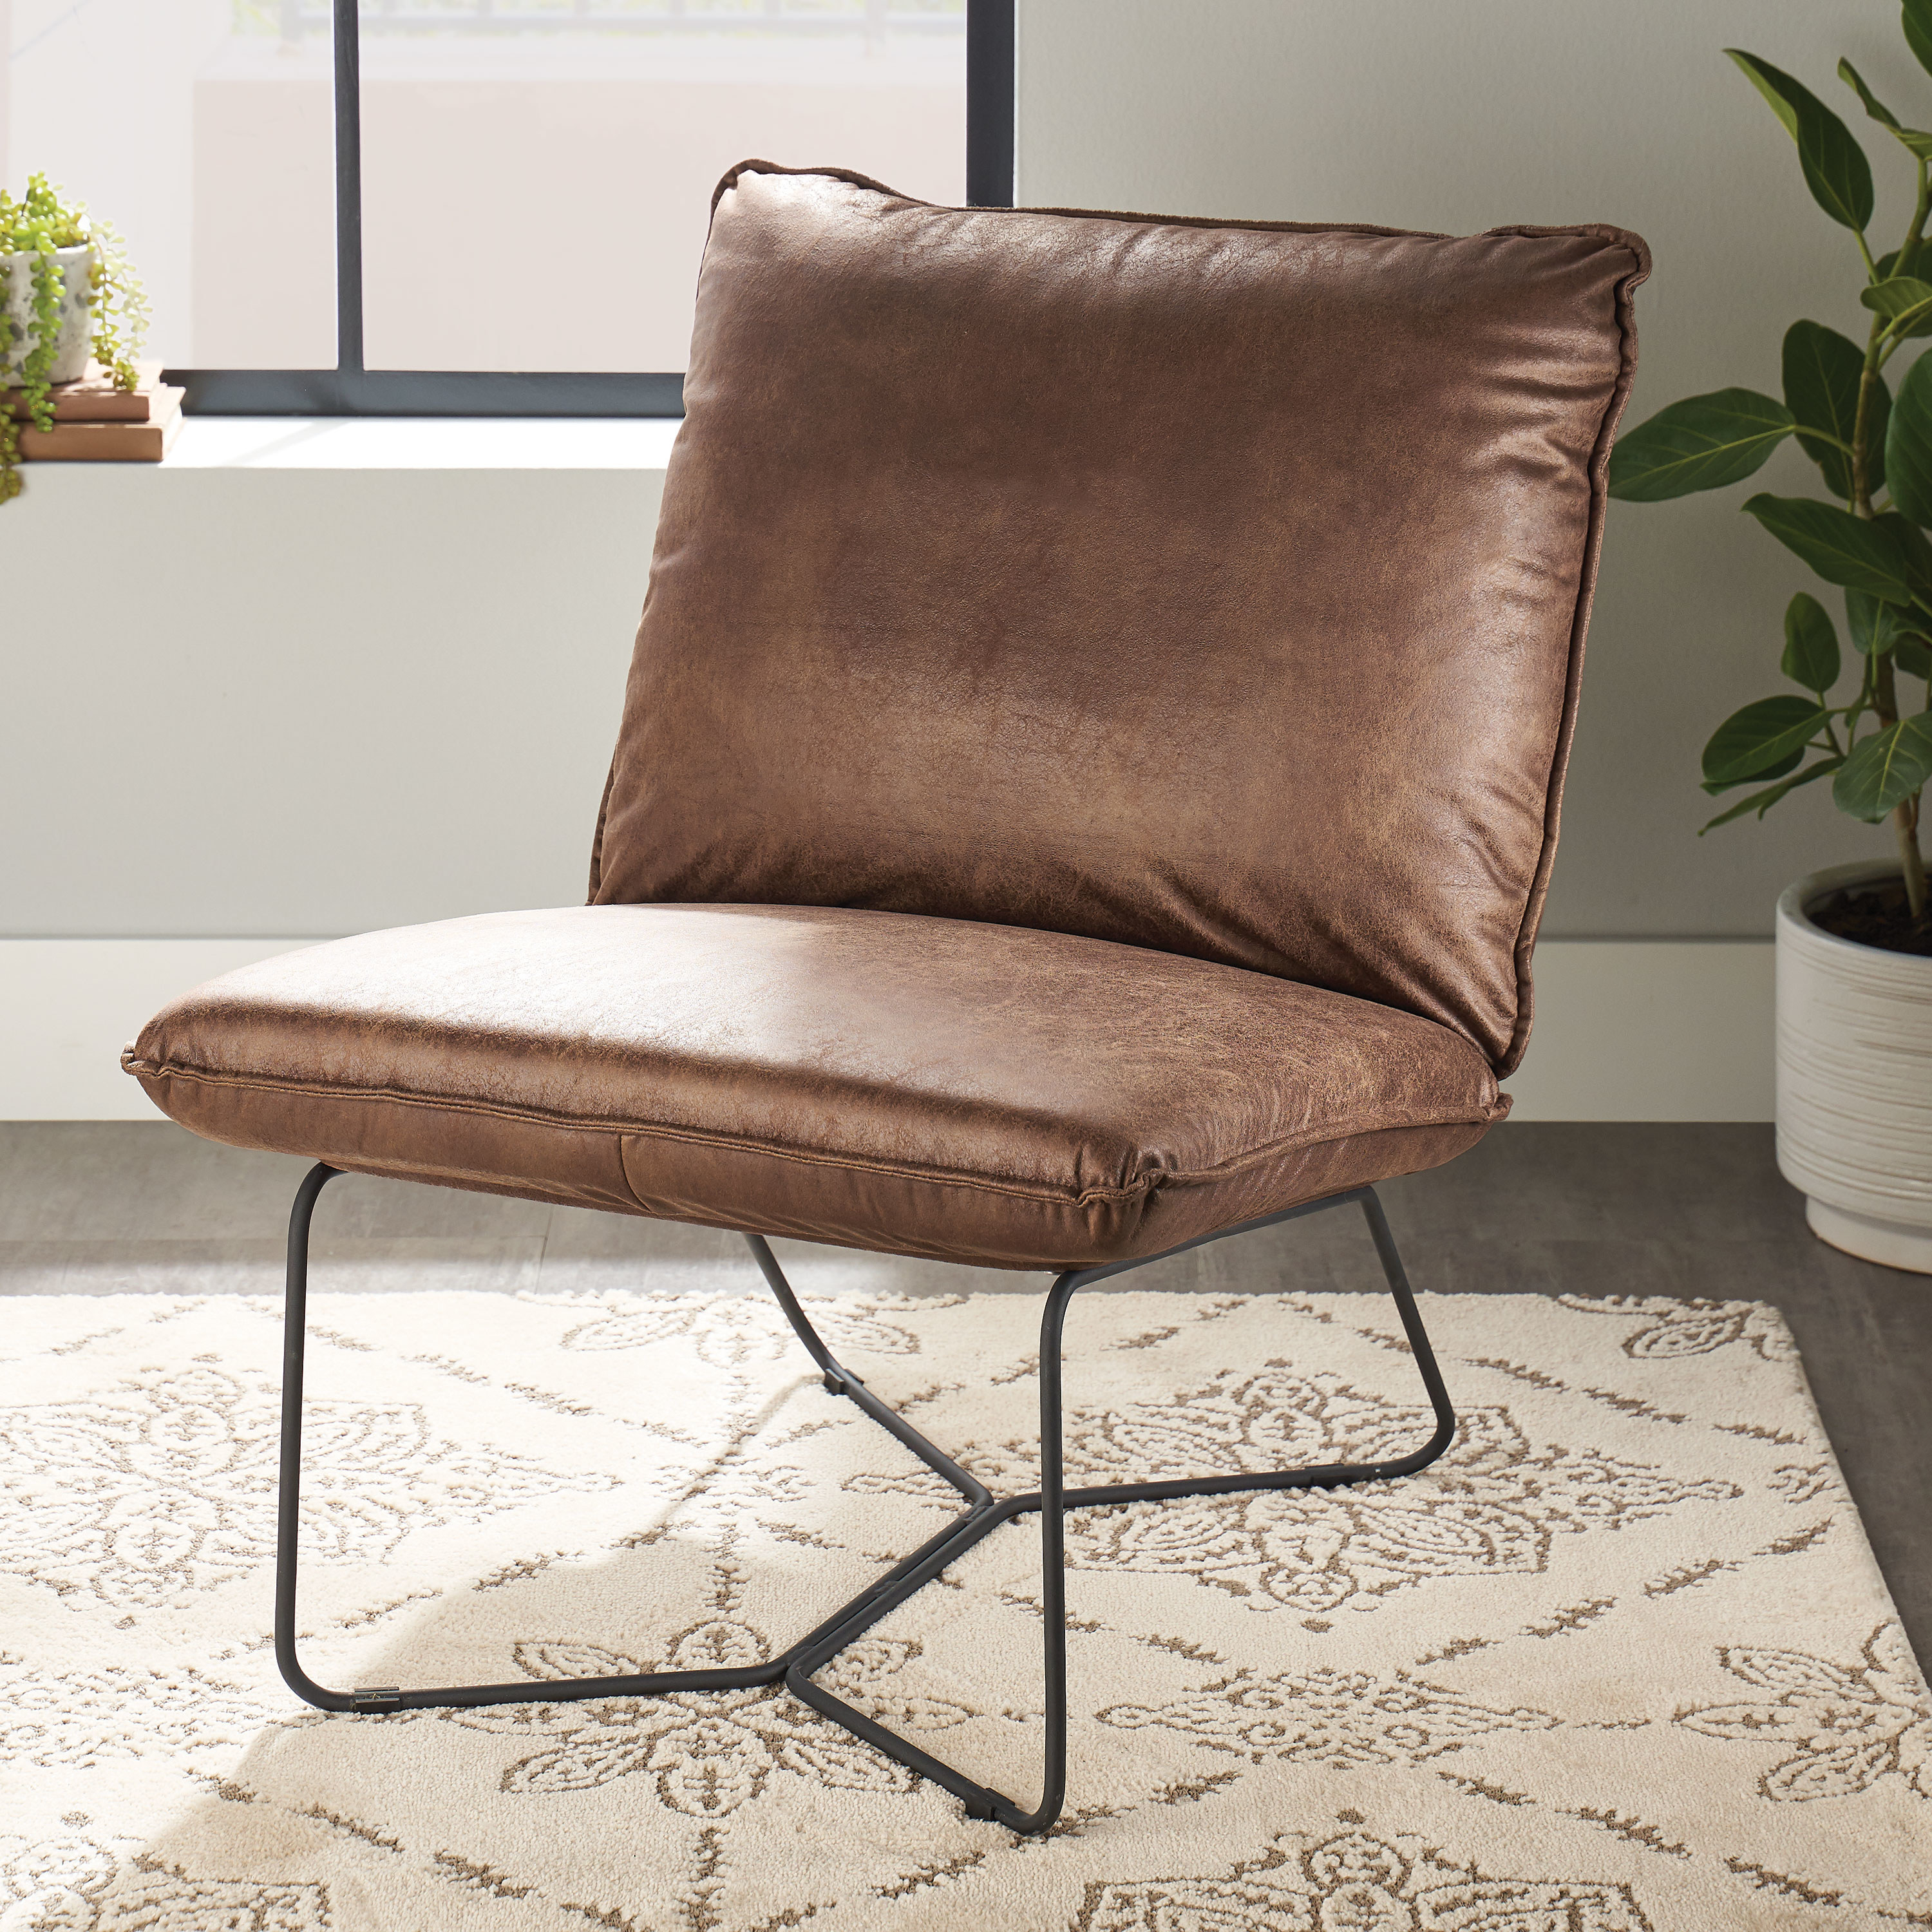 a brown leather pillow chair with black legs